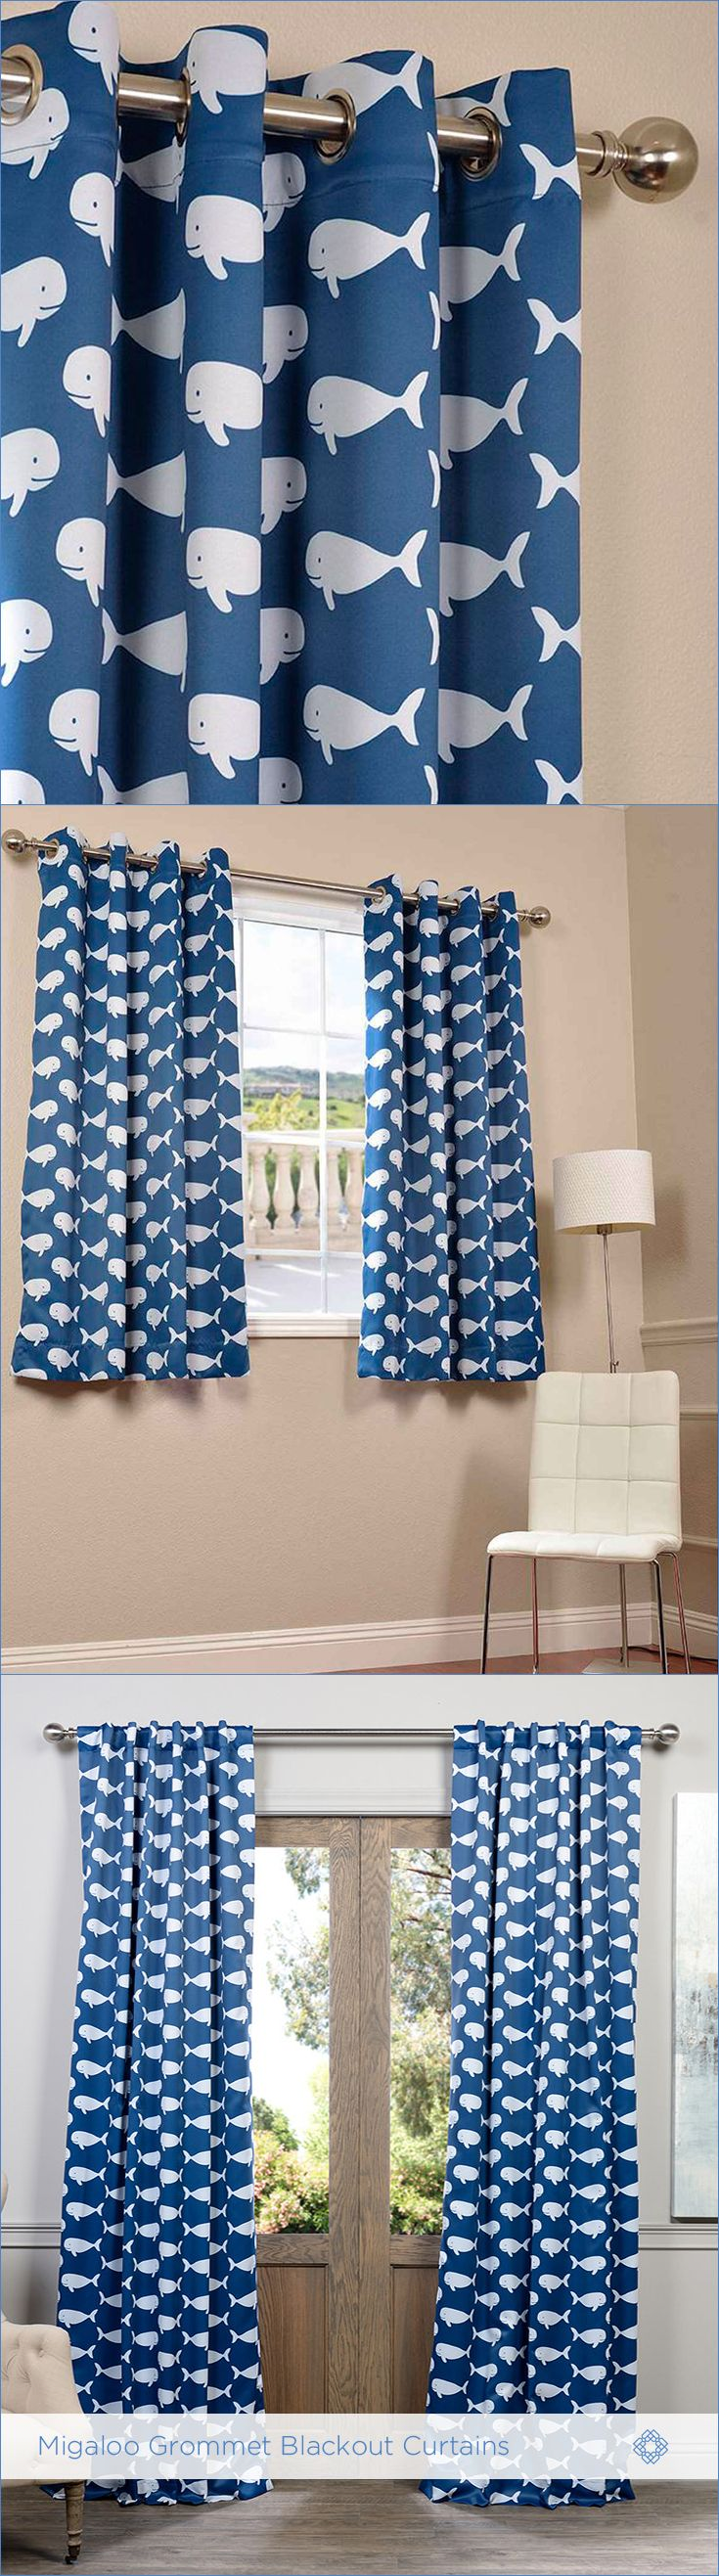 Cobalt blue window treatments - You Will Instantly Fall In Love With Our Blackout Curtains And Drapes The Fabric Is